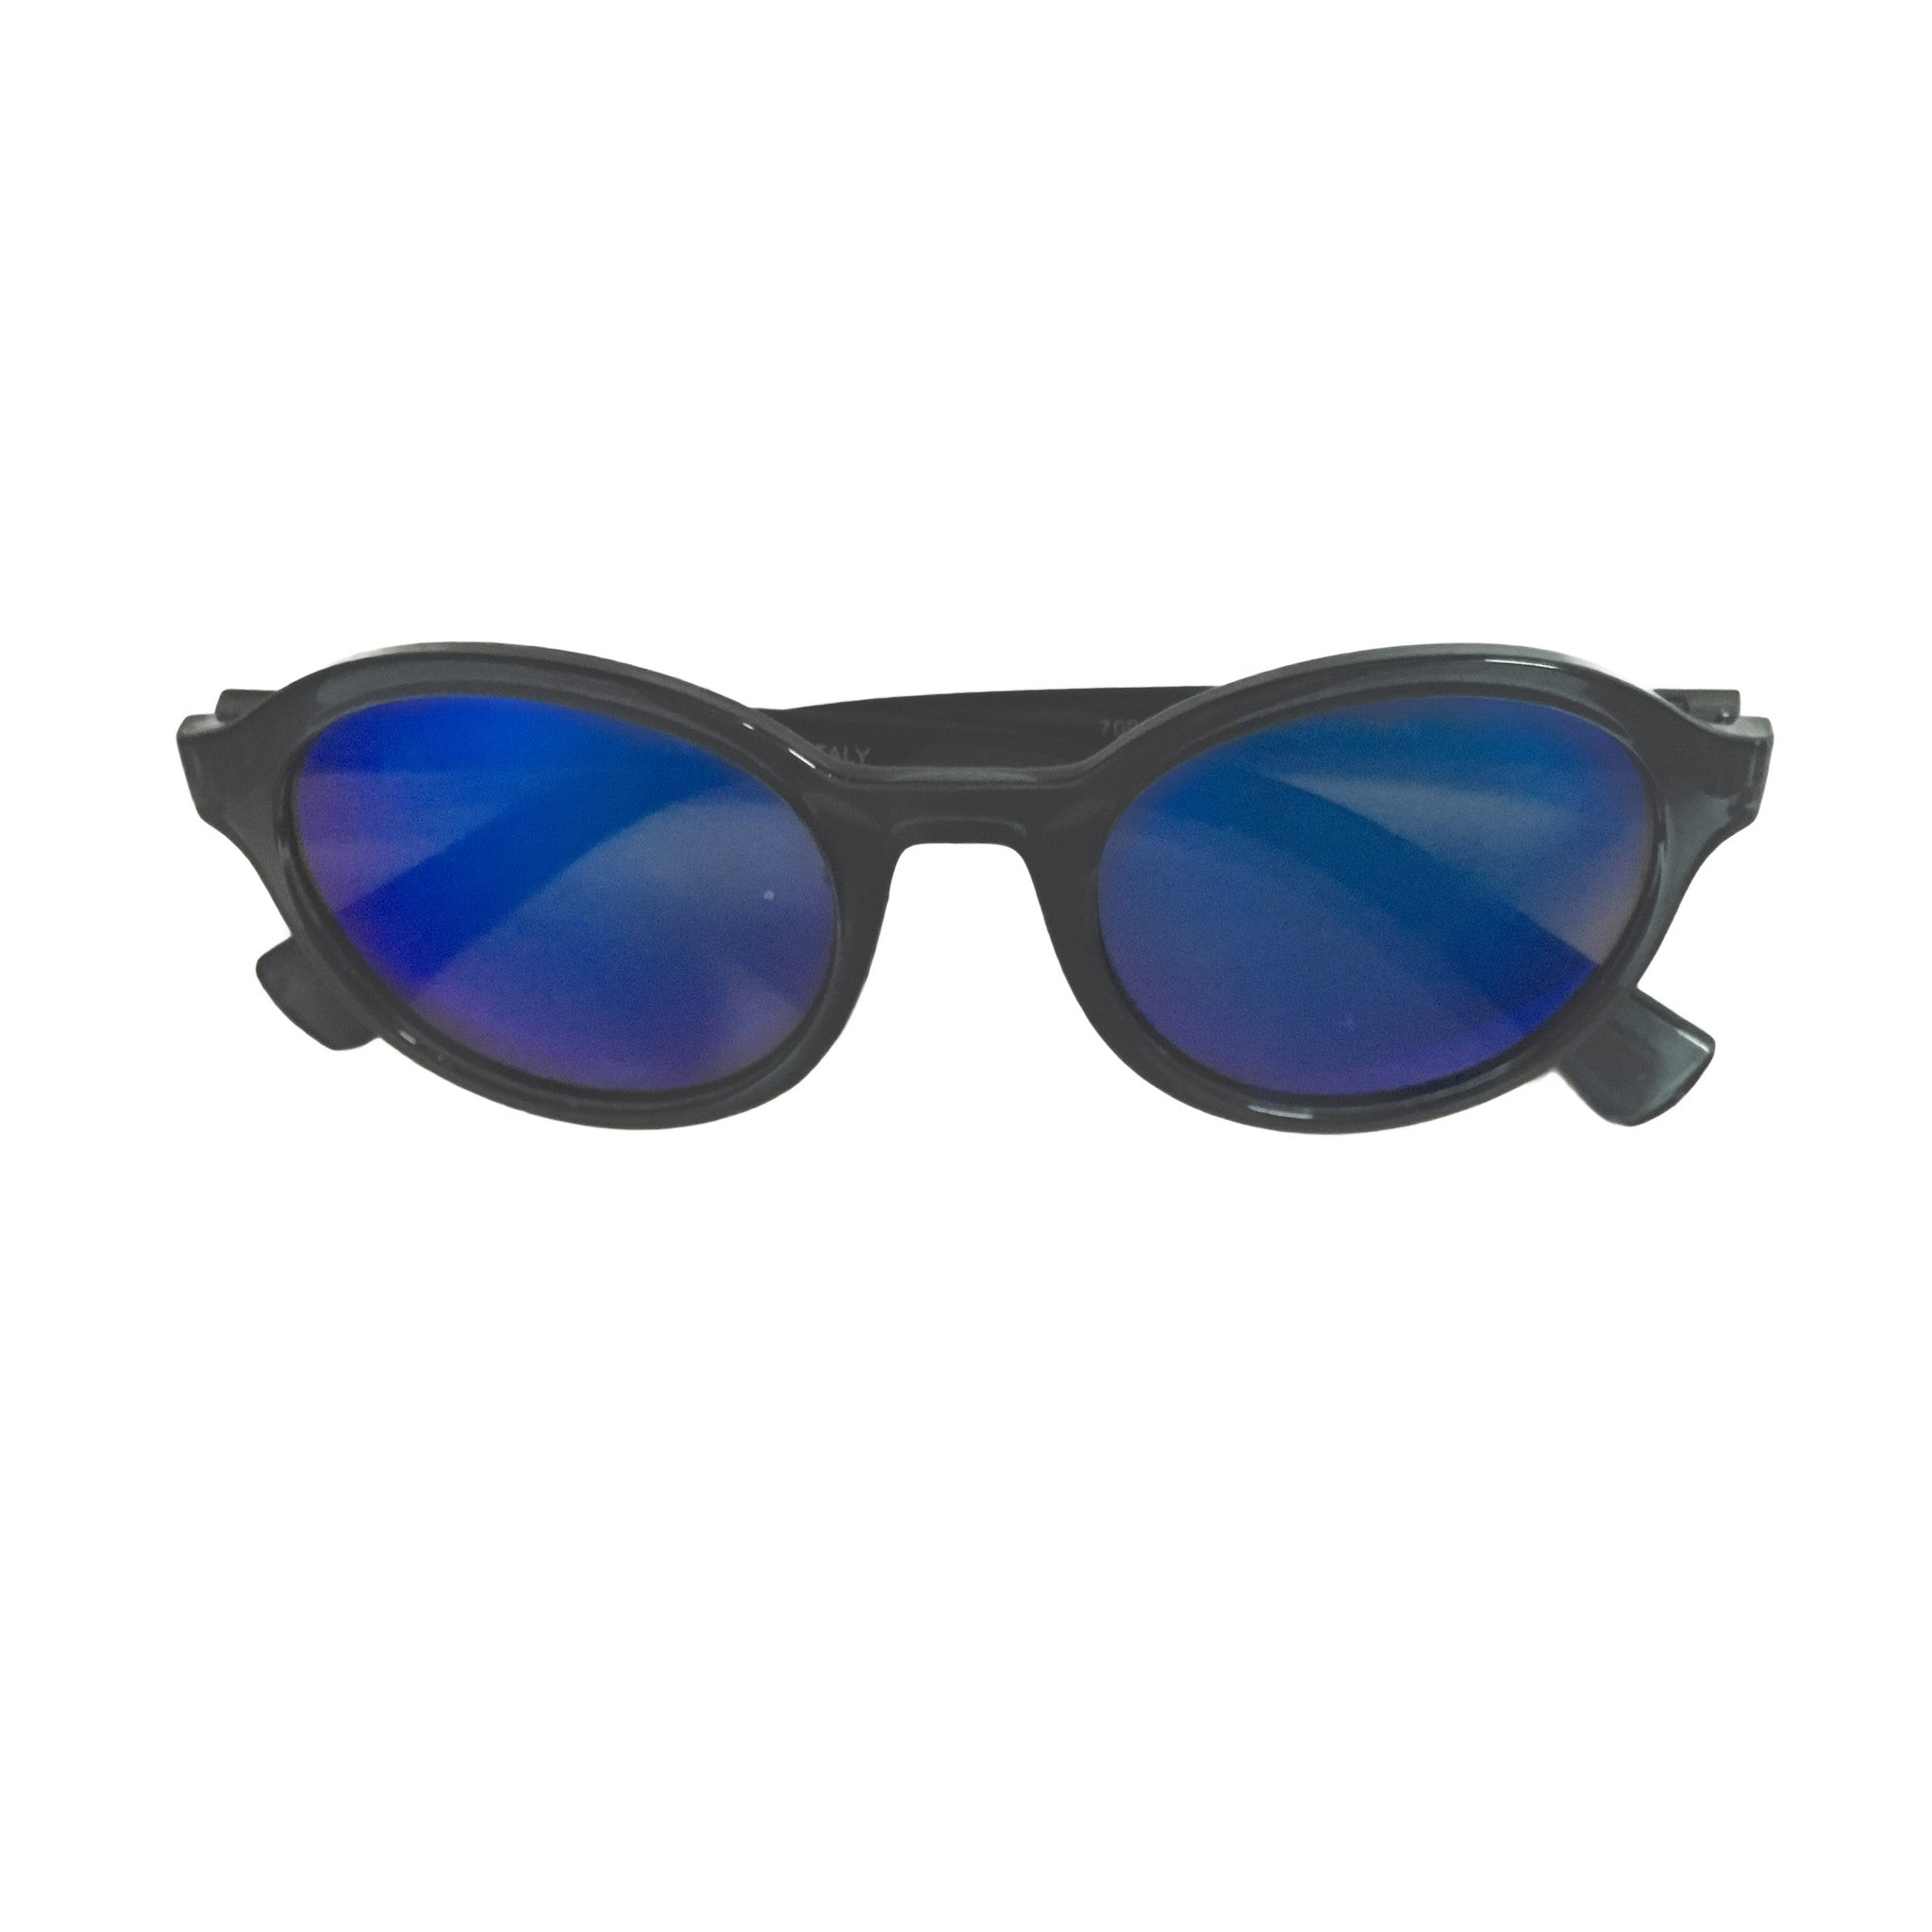 Round Reflector Sunglasses - Crochita - 9